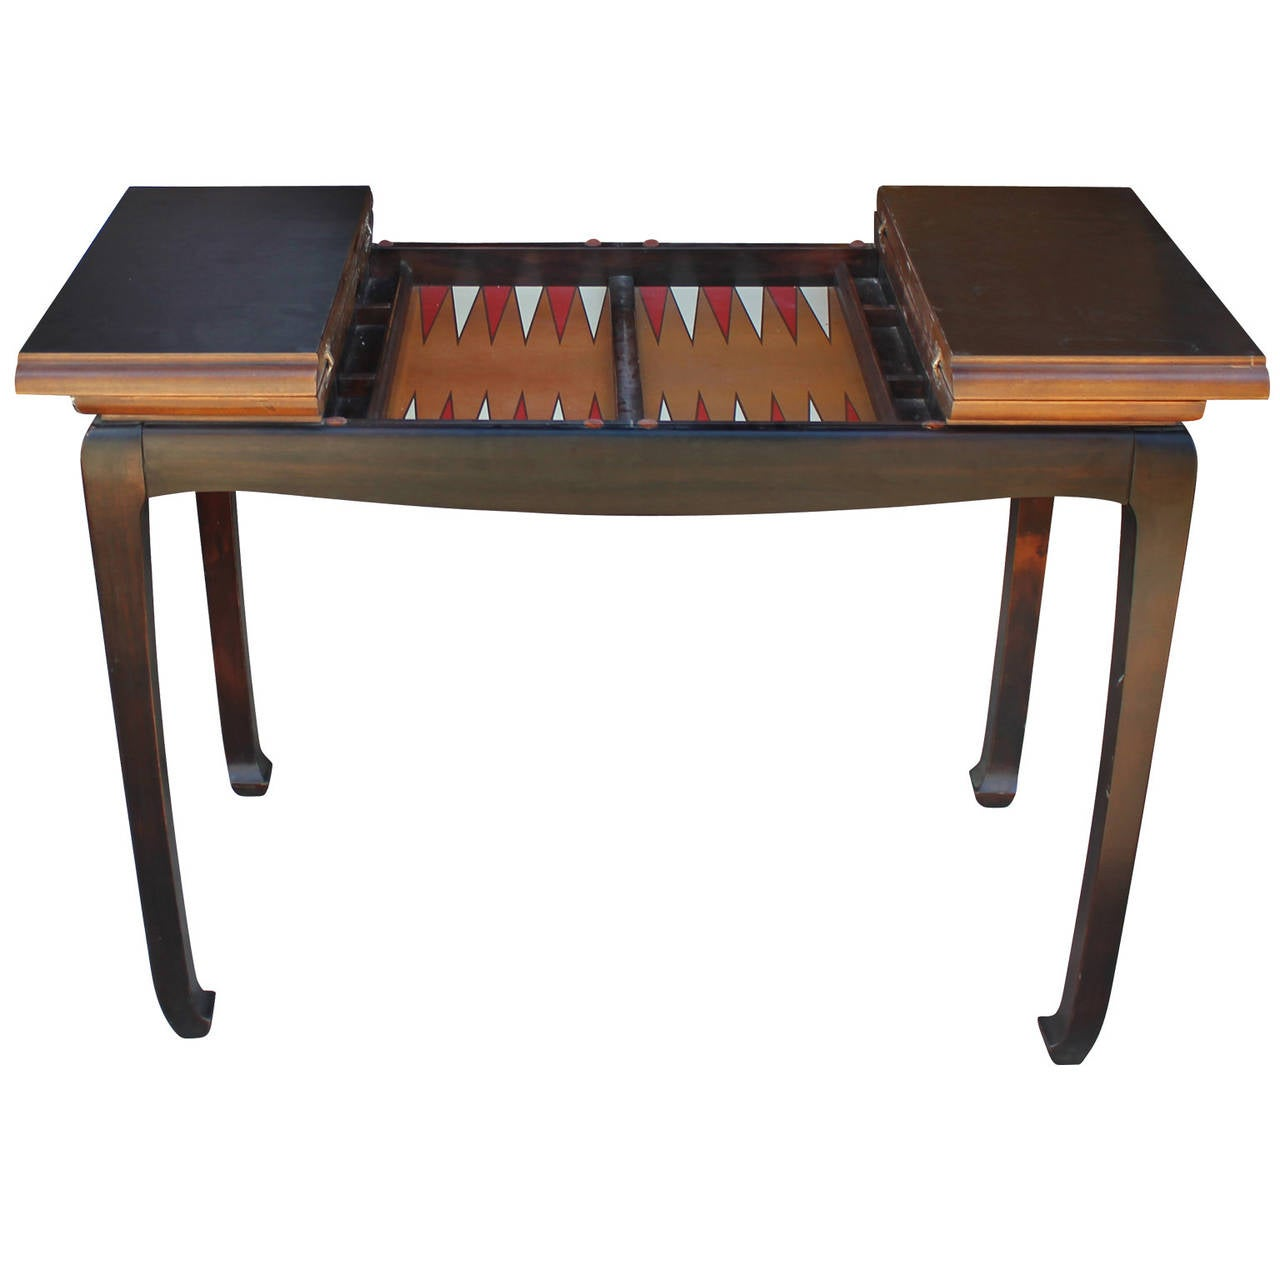 Modern walnut backgammon game table at 1stdibs for 10 games in 1 table